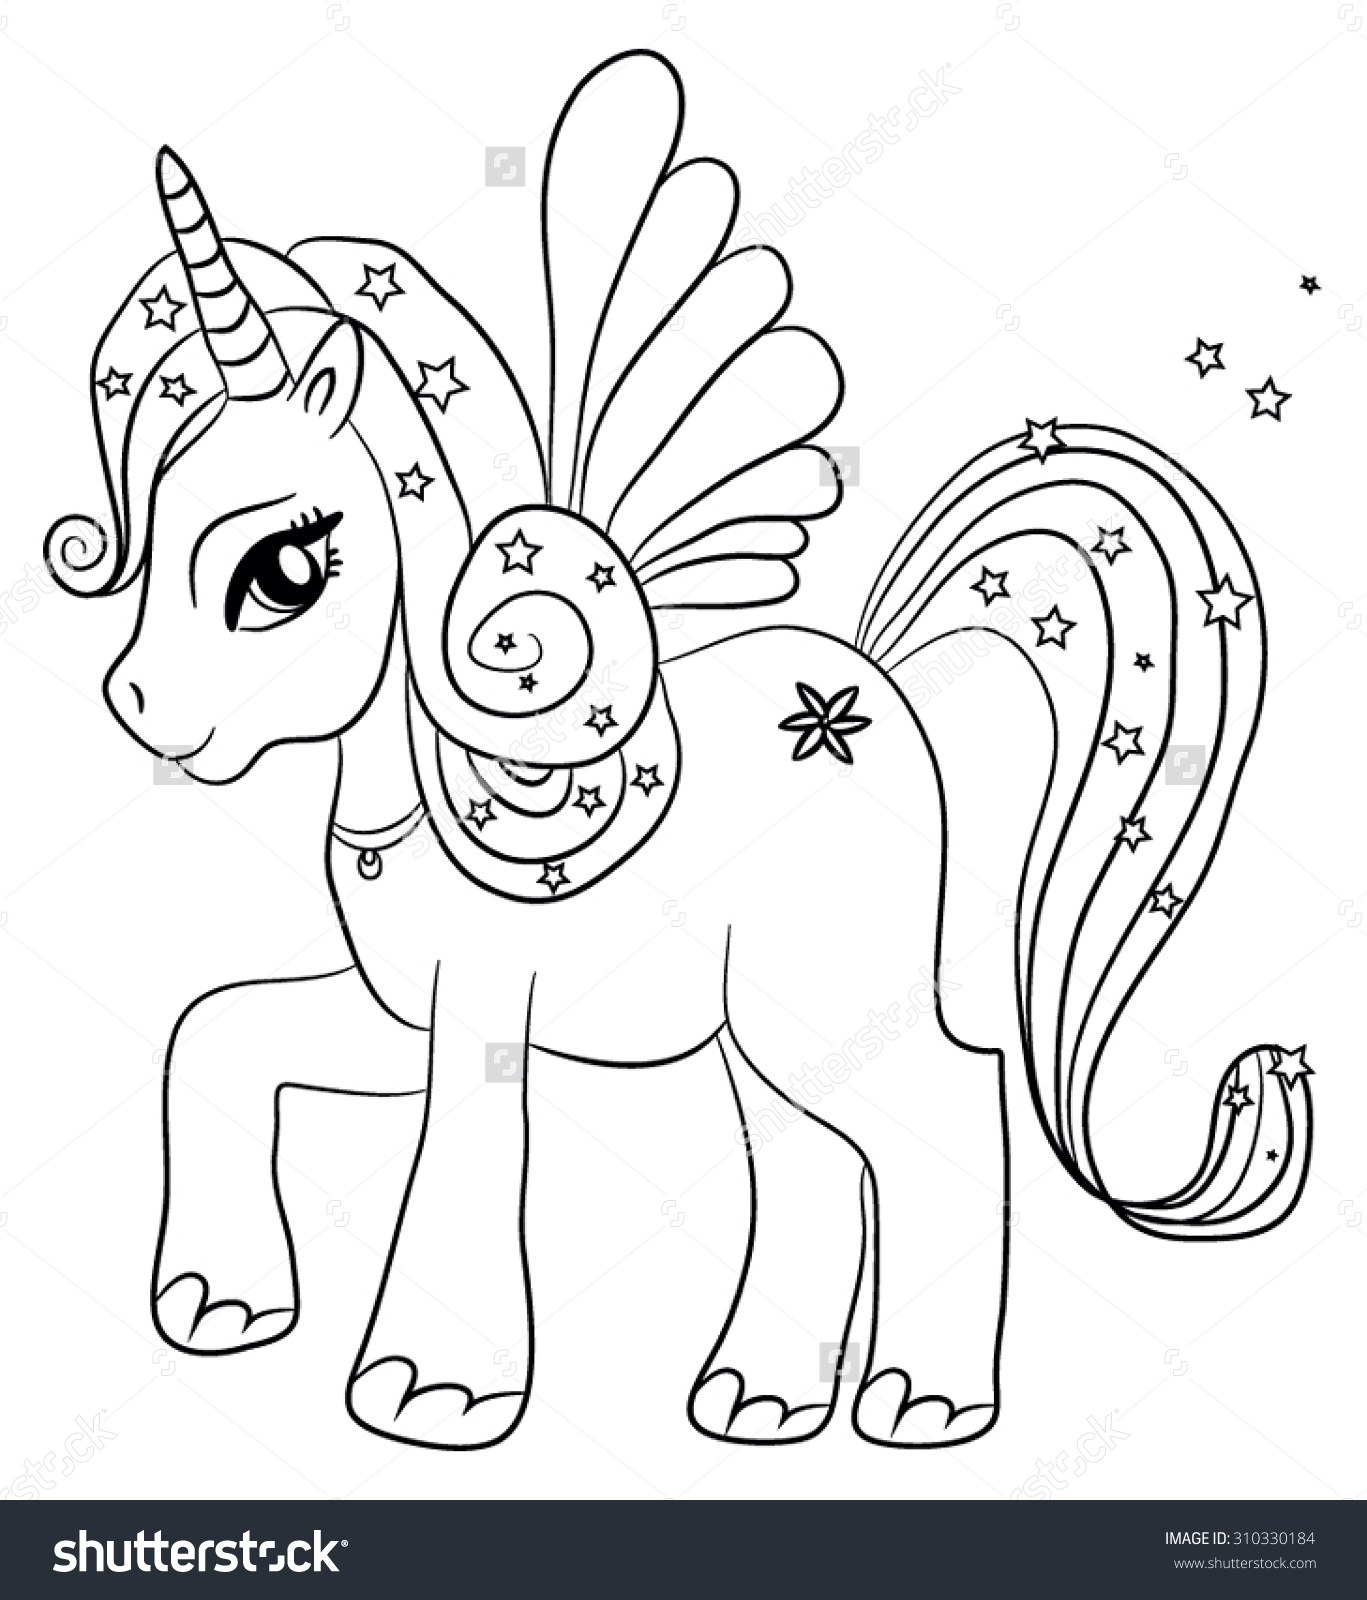 free printable unicorn coloring pages - unicorn coloring pages unicorn coloring page coloringpagefree to print